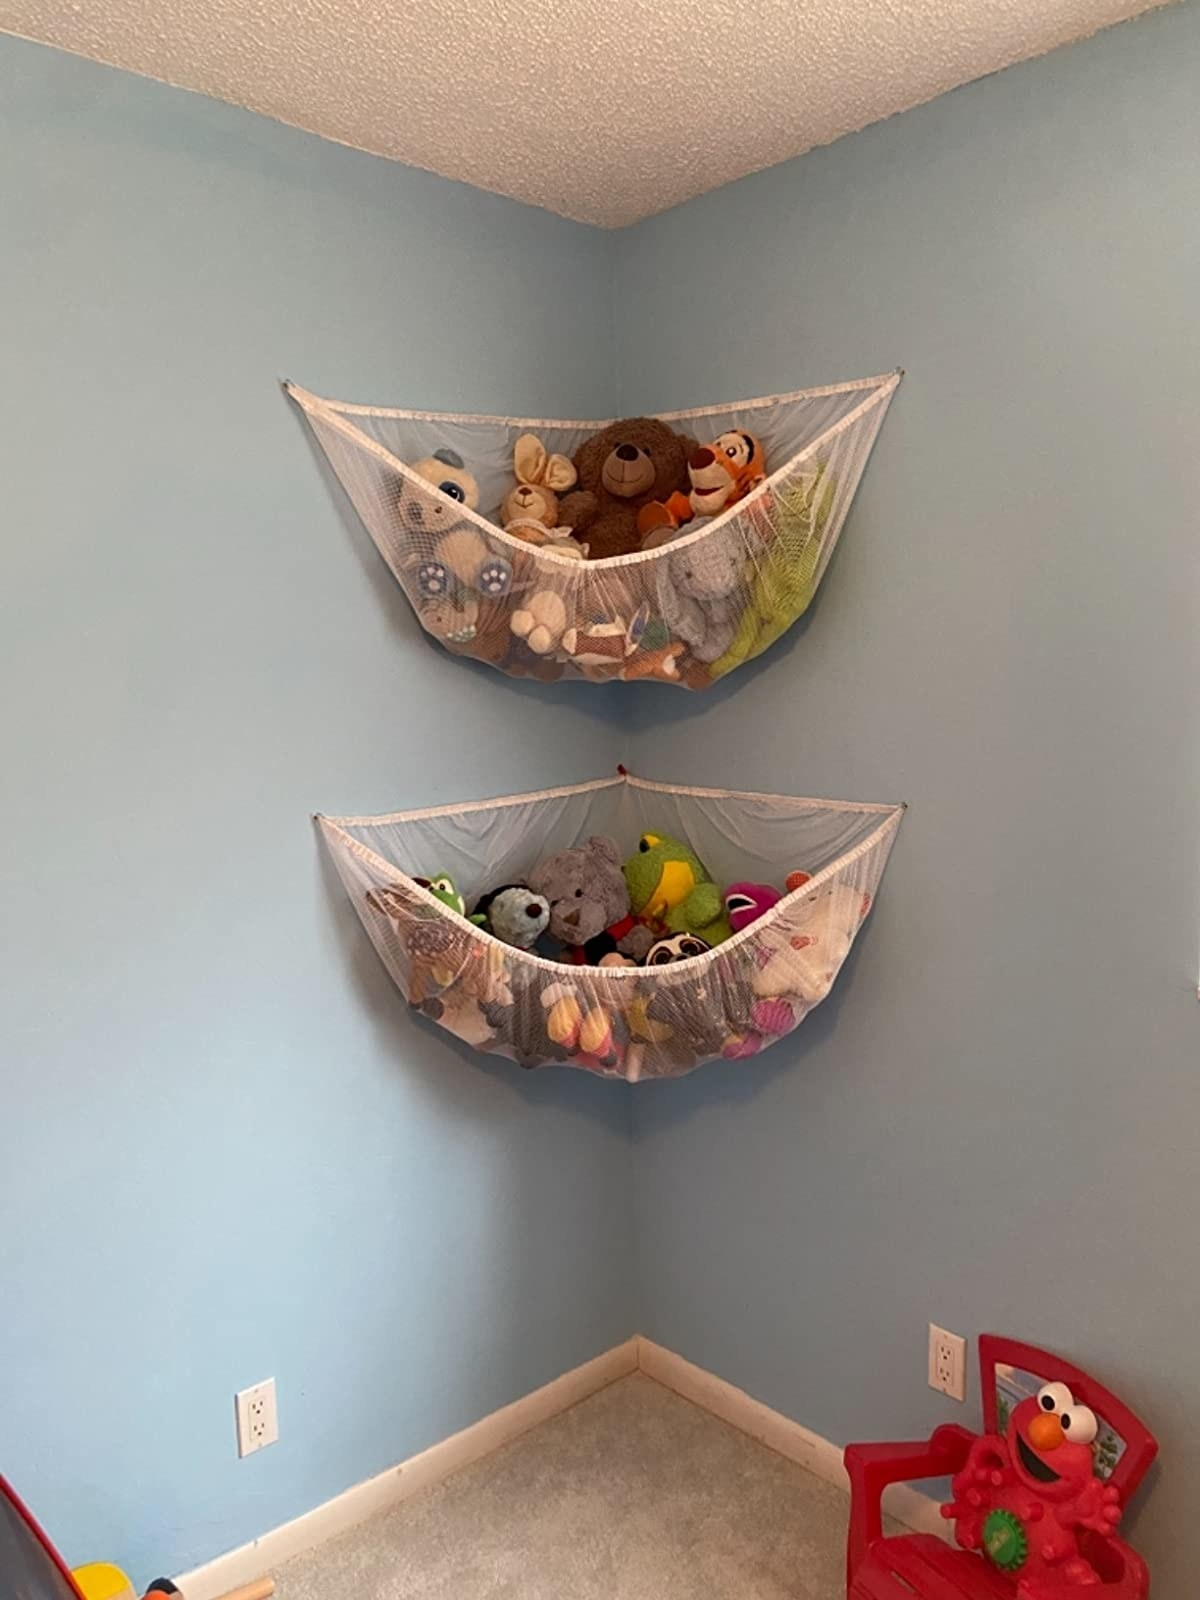 Reviewer's photo showing a pair of white hammocks holding stuffed animals and hanging on a blue wall